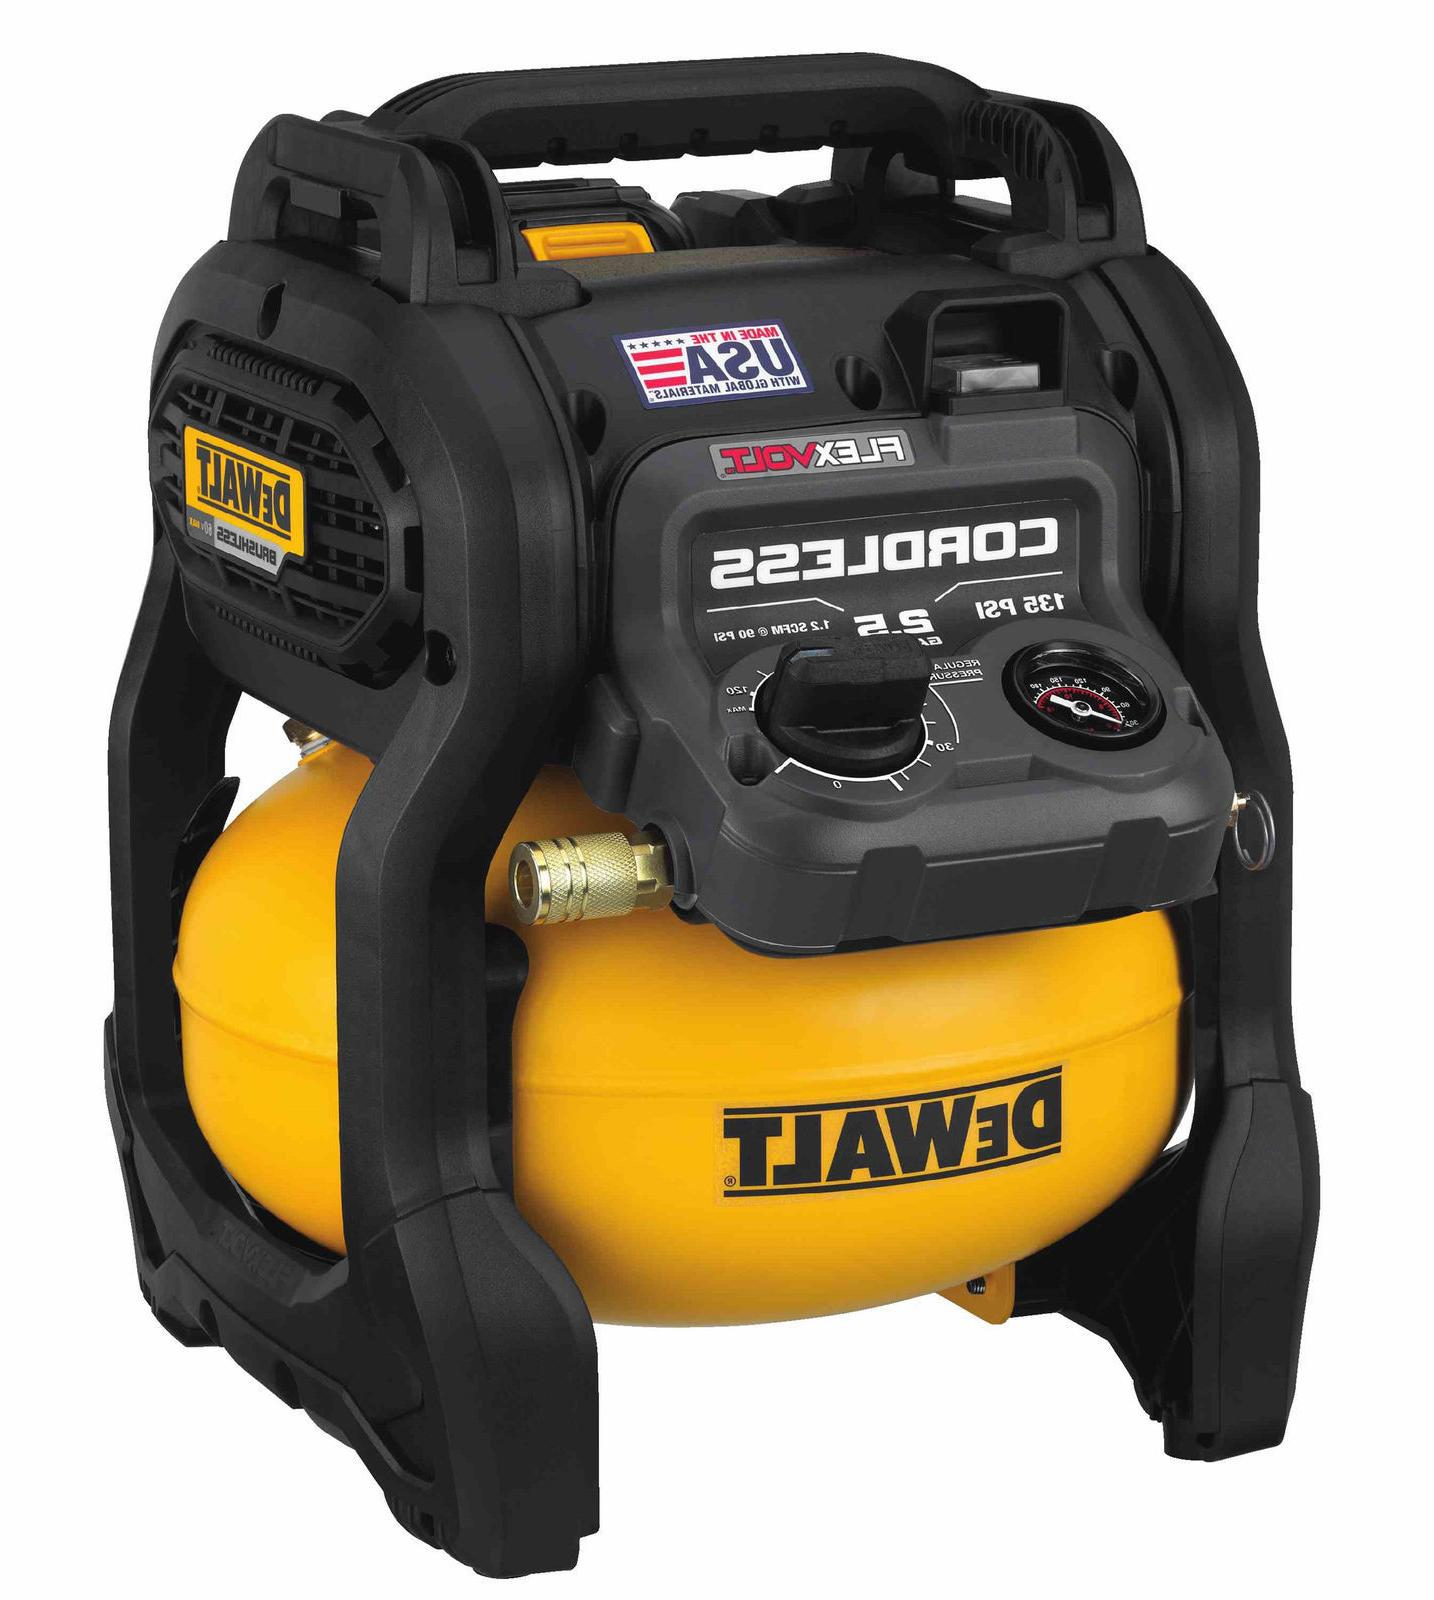 DEWALT DCC2560T1 FlexVolt 60V Max 2.5 Gallon Cordless Air Co